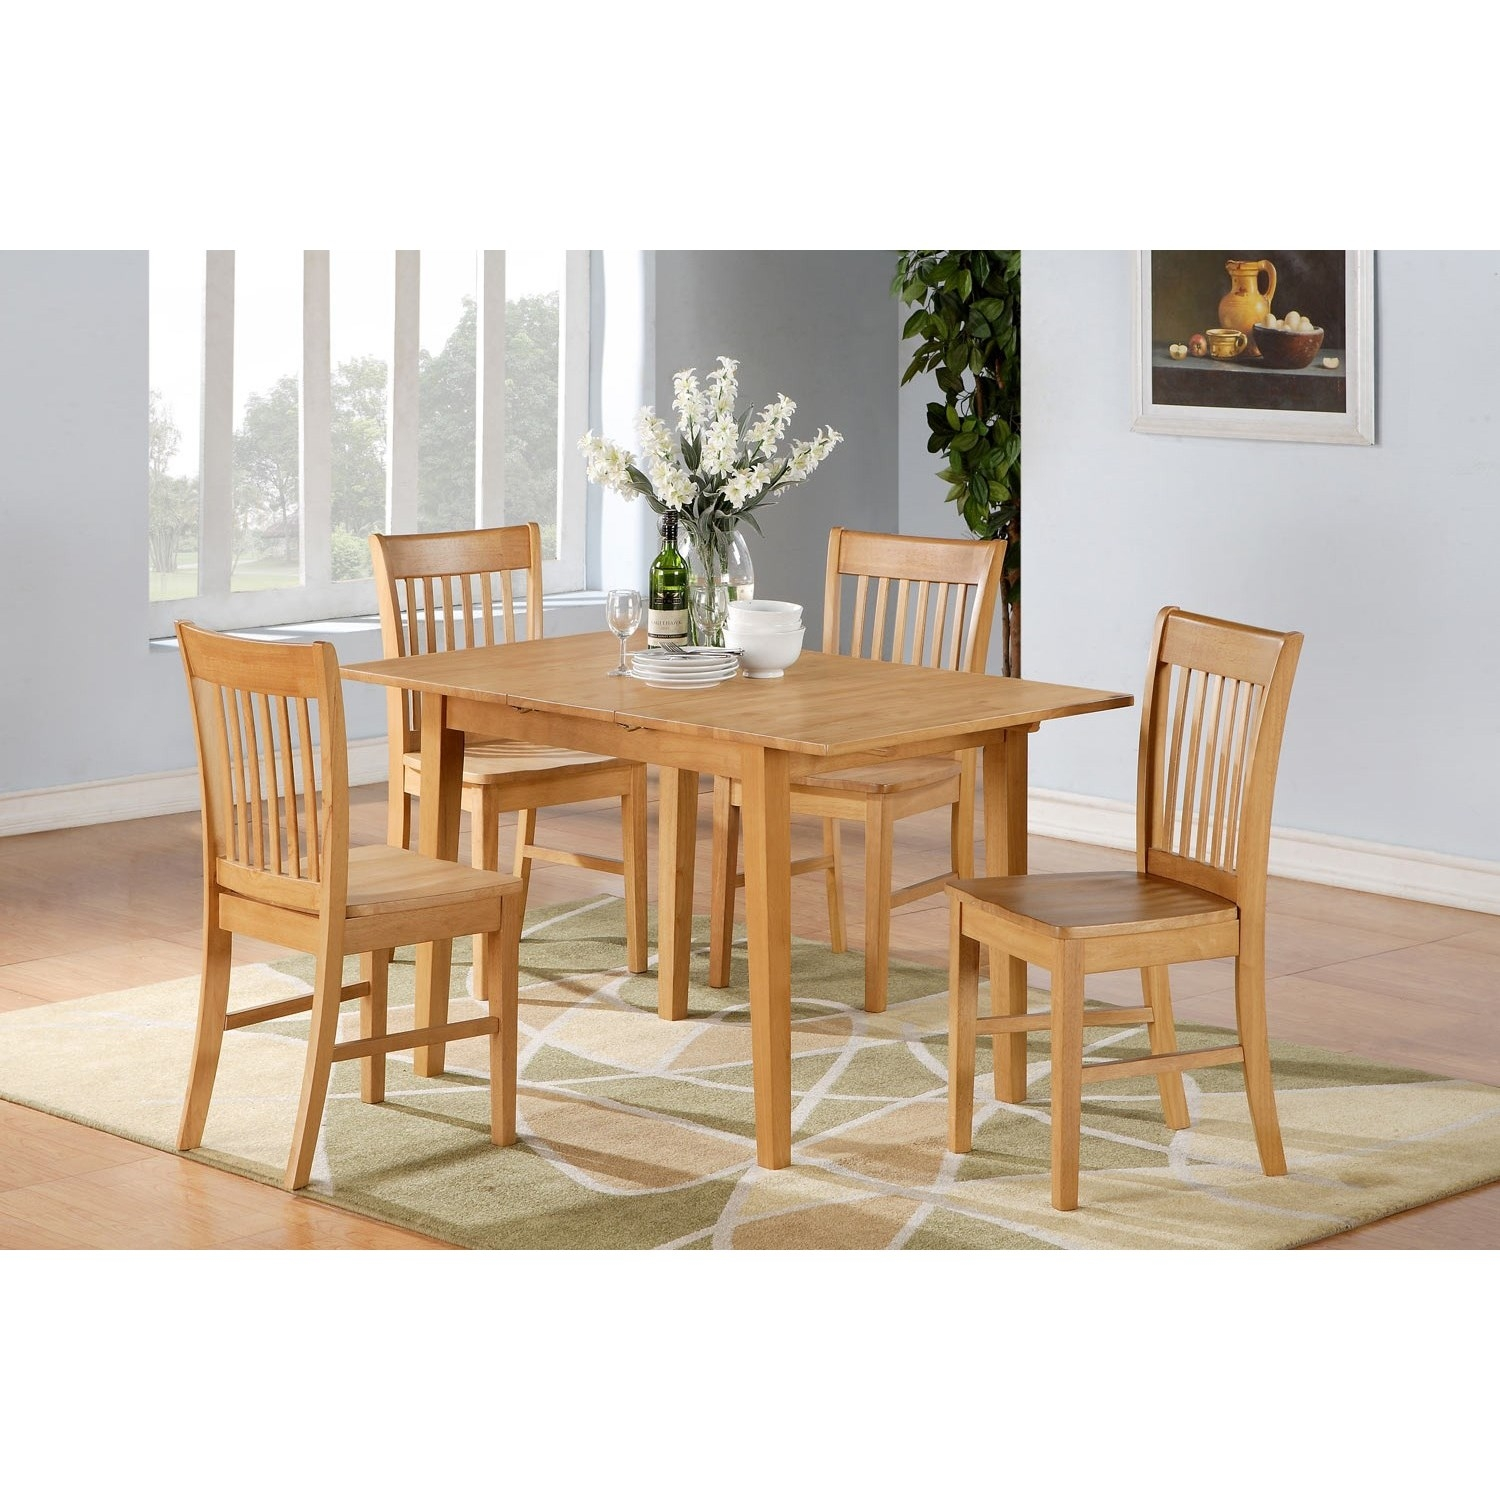 Wooden Kitchen Table Sets1500 X 1500